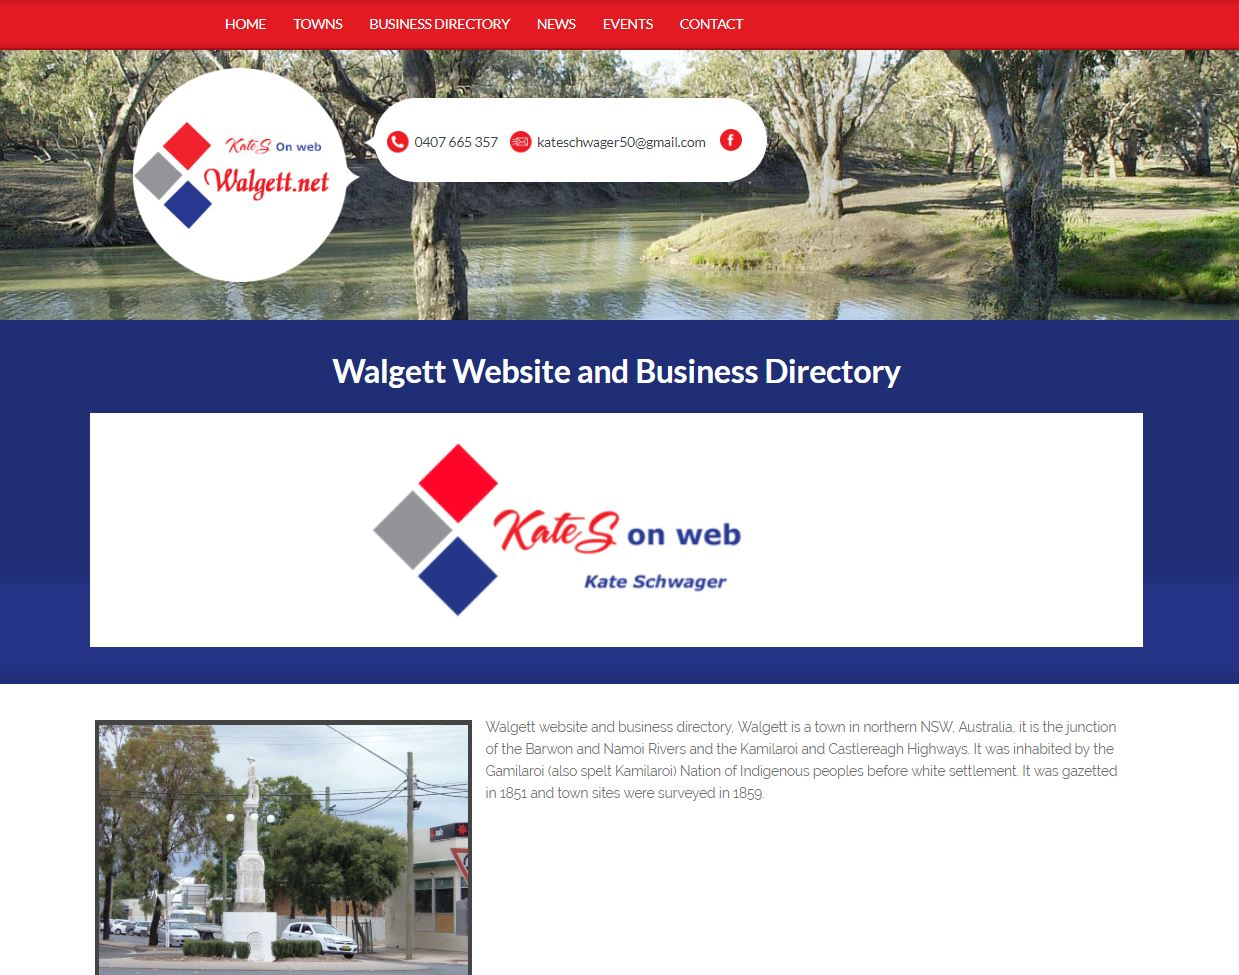 Walgett Website